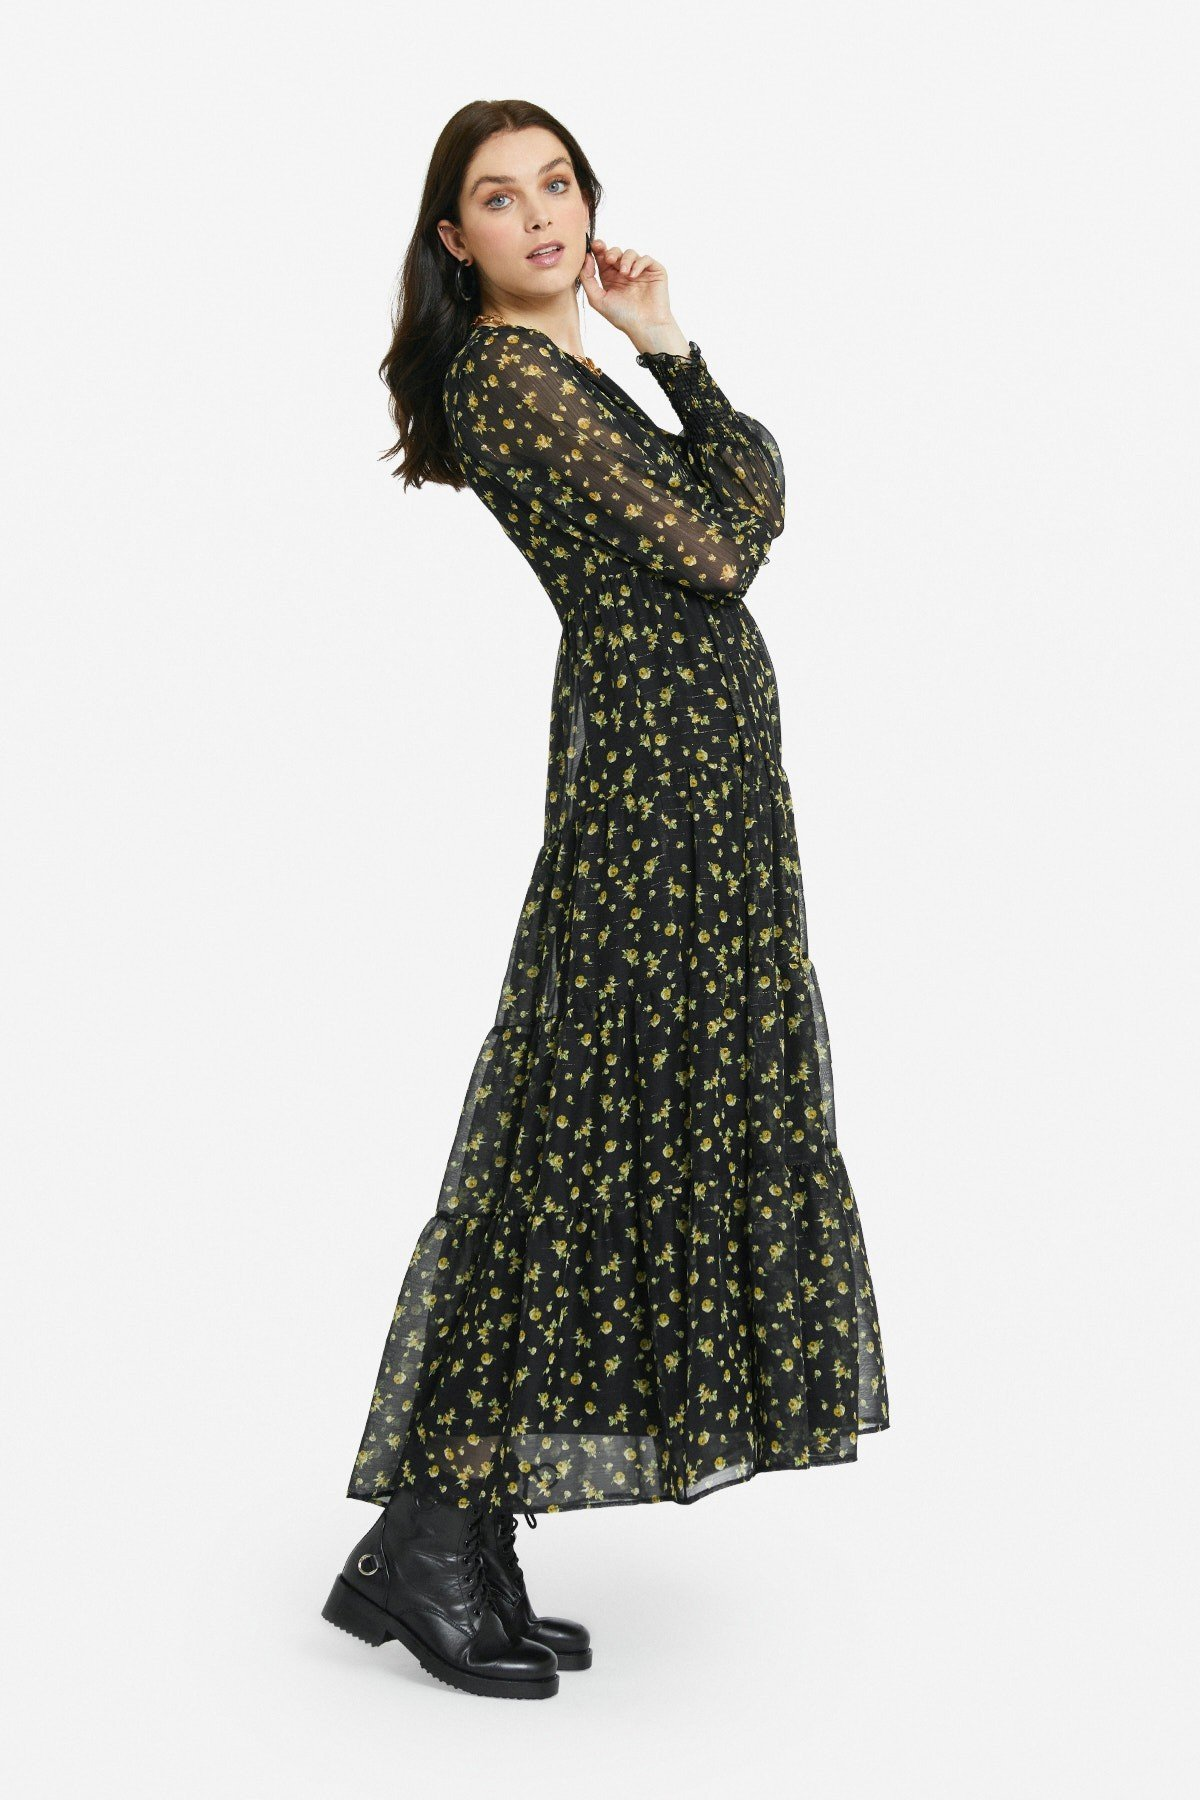 Patterned long dress with ruffles